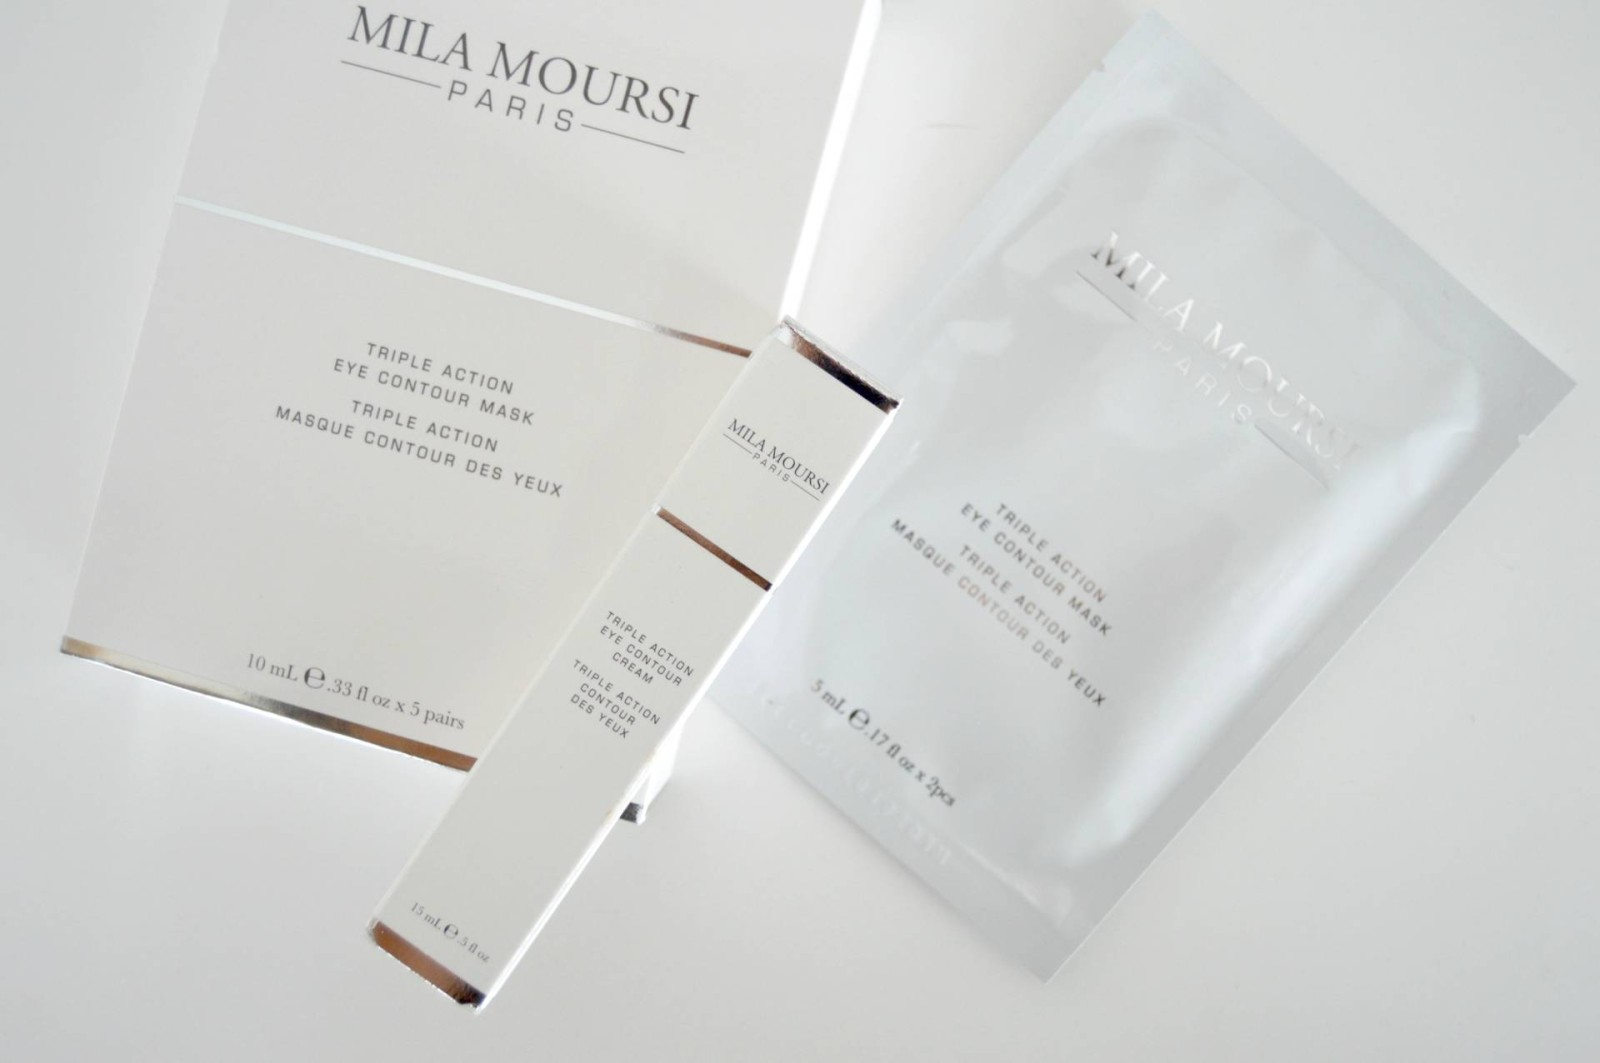 Mila Moursi Triple Action Eye Contour Cream & Mask